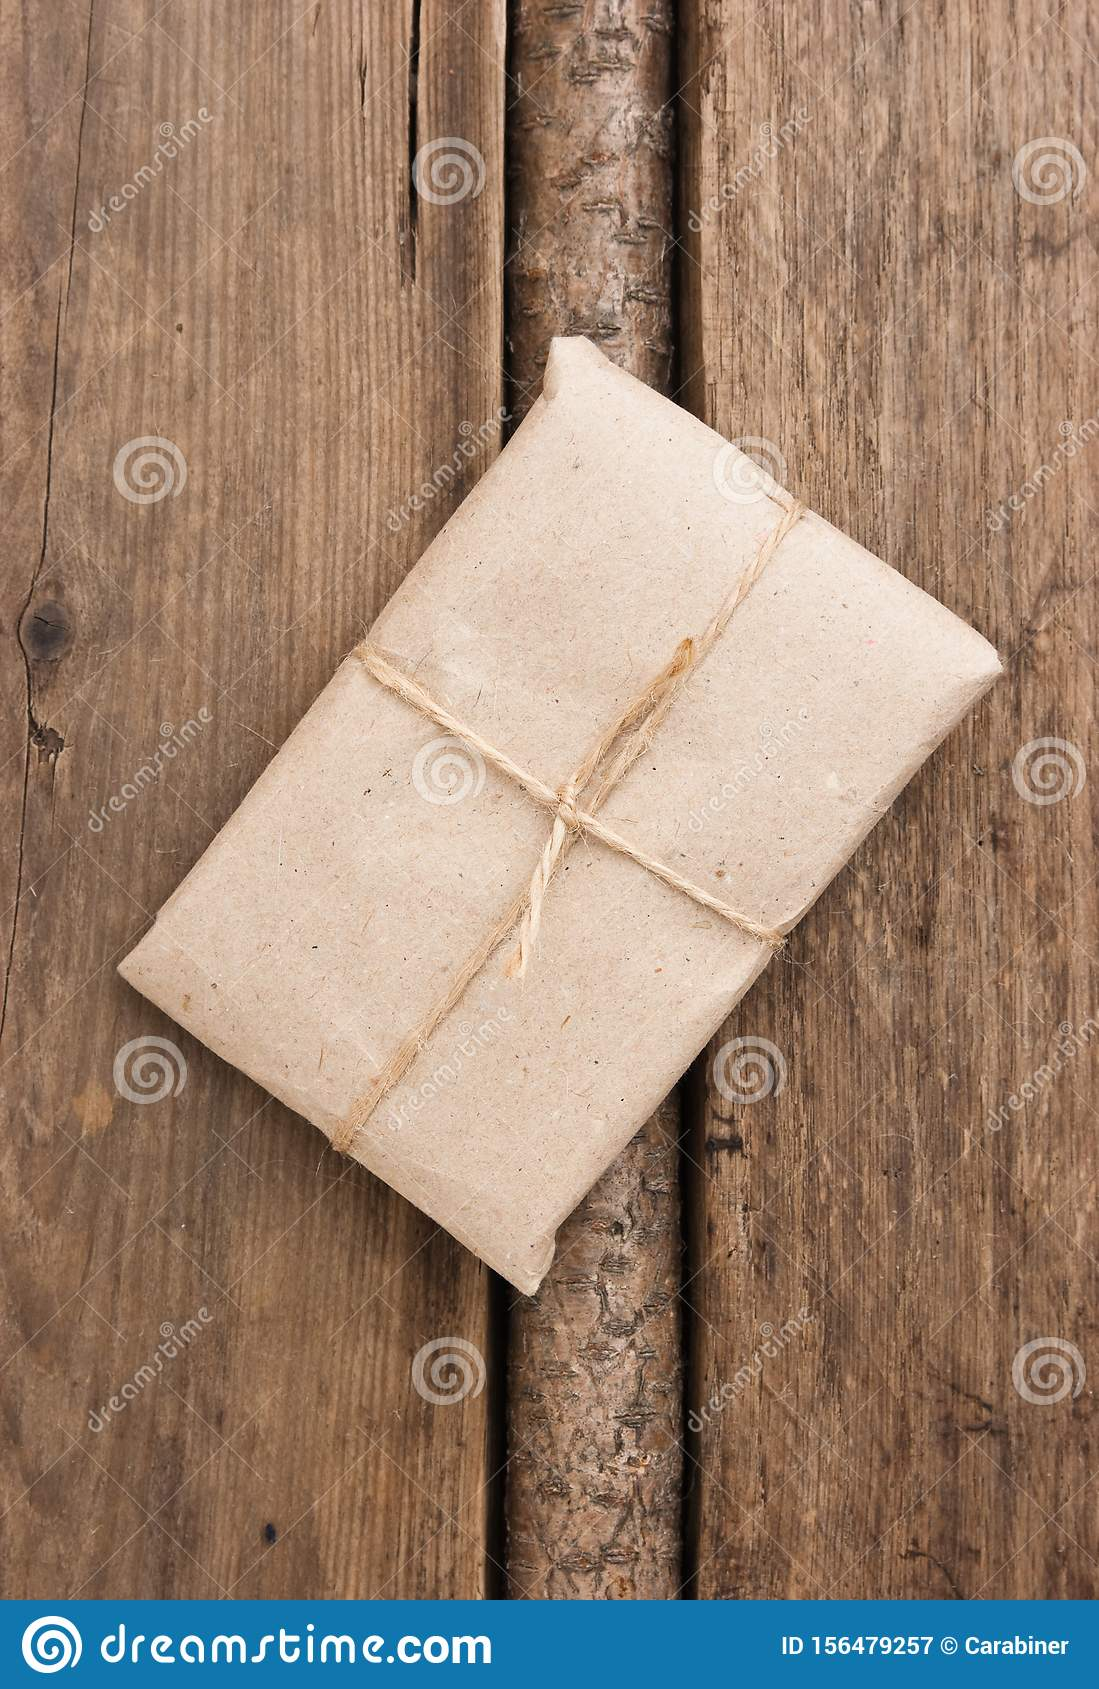 parcel wrapped